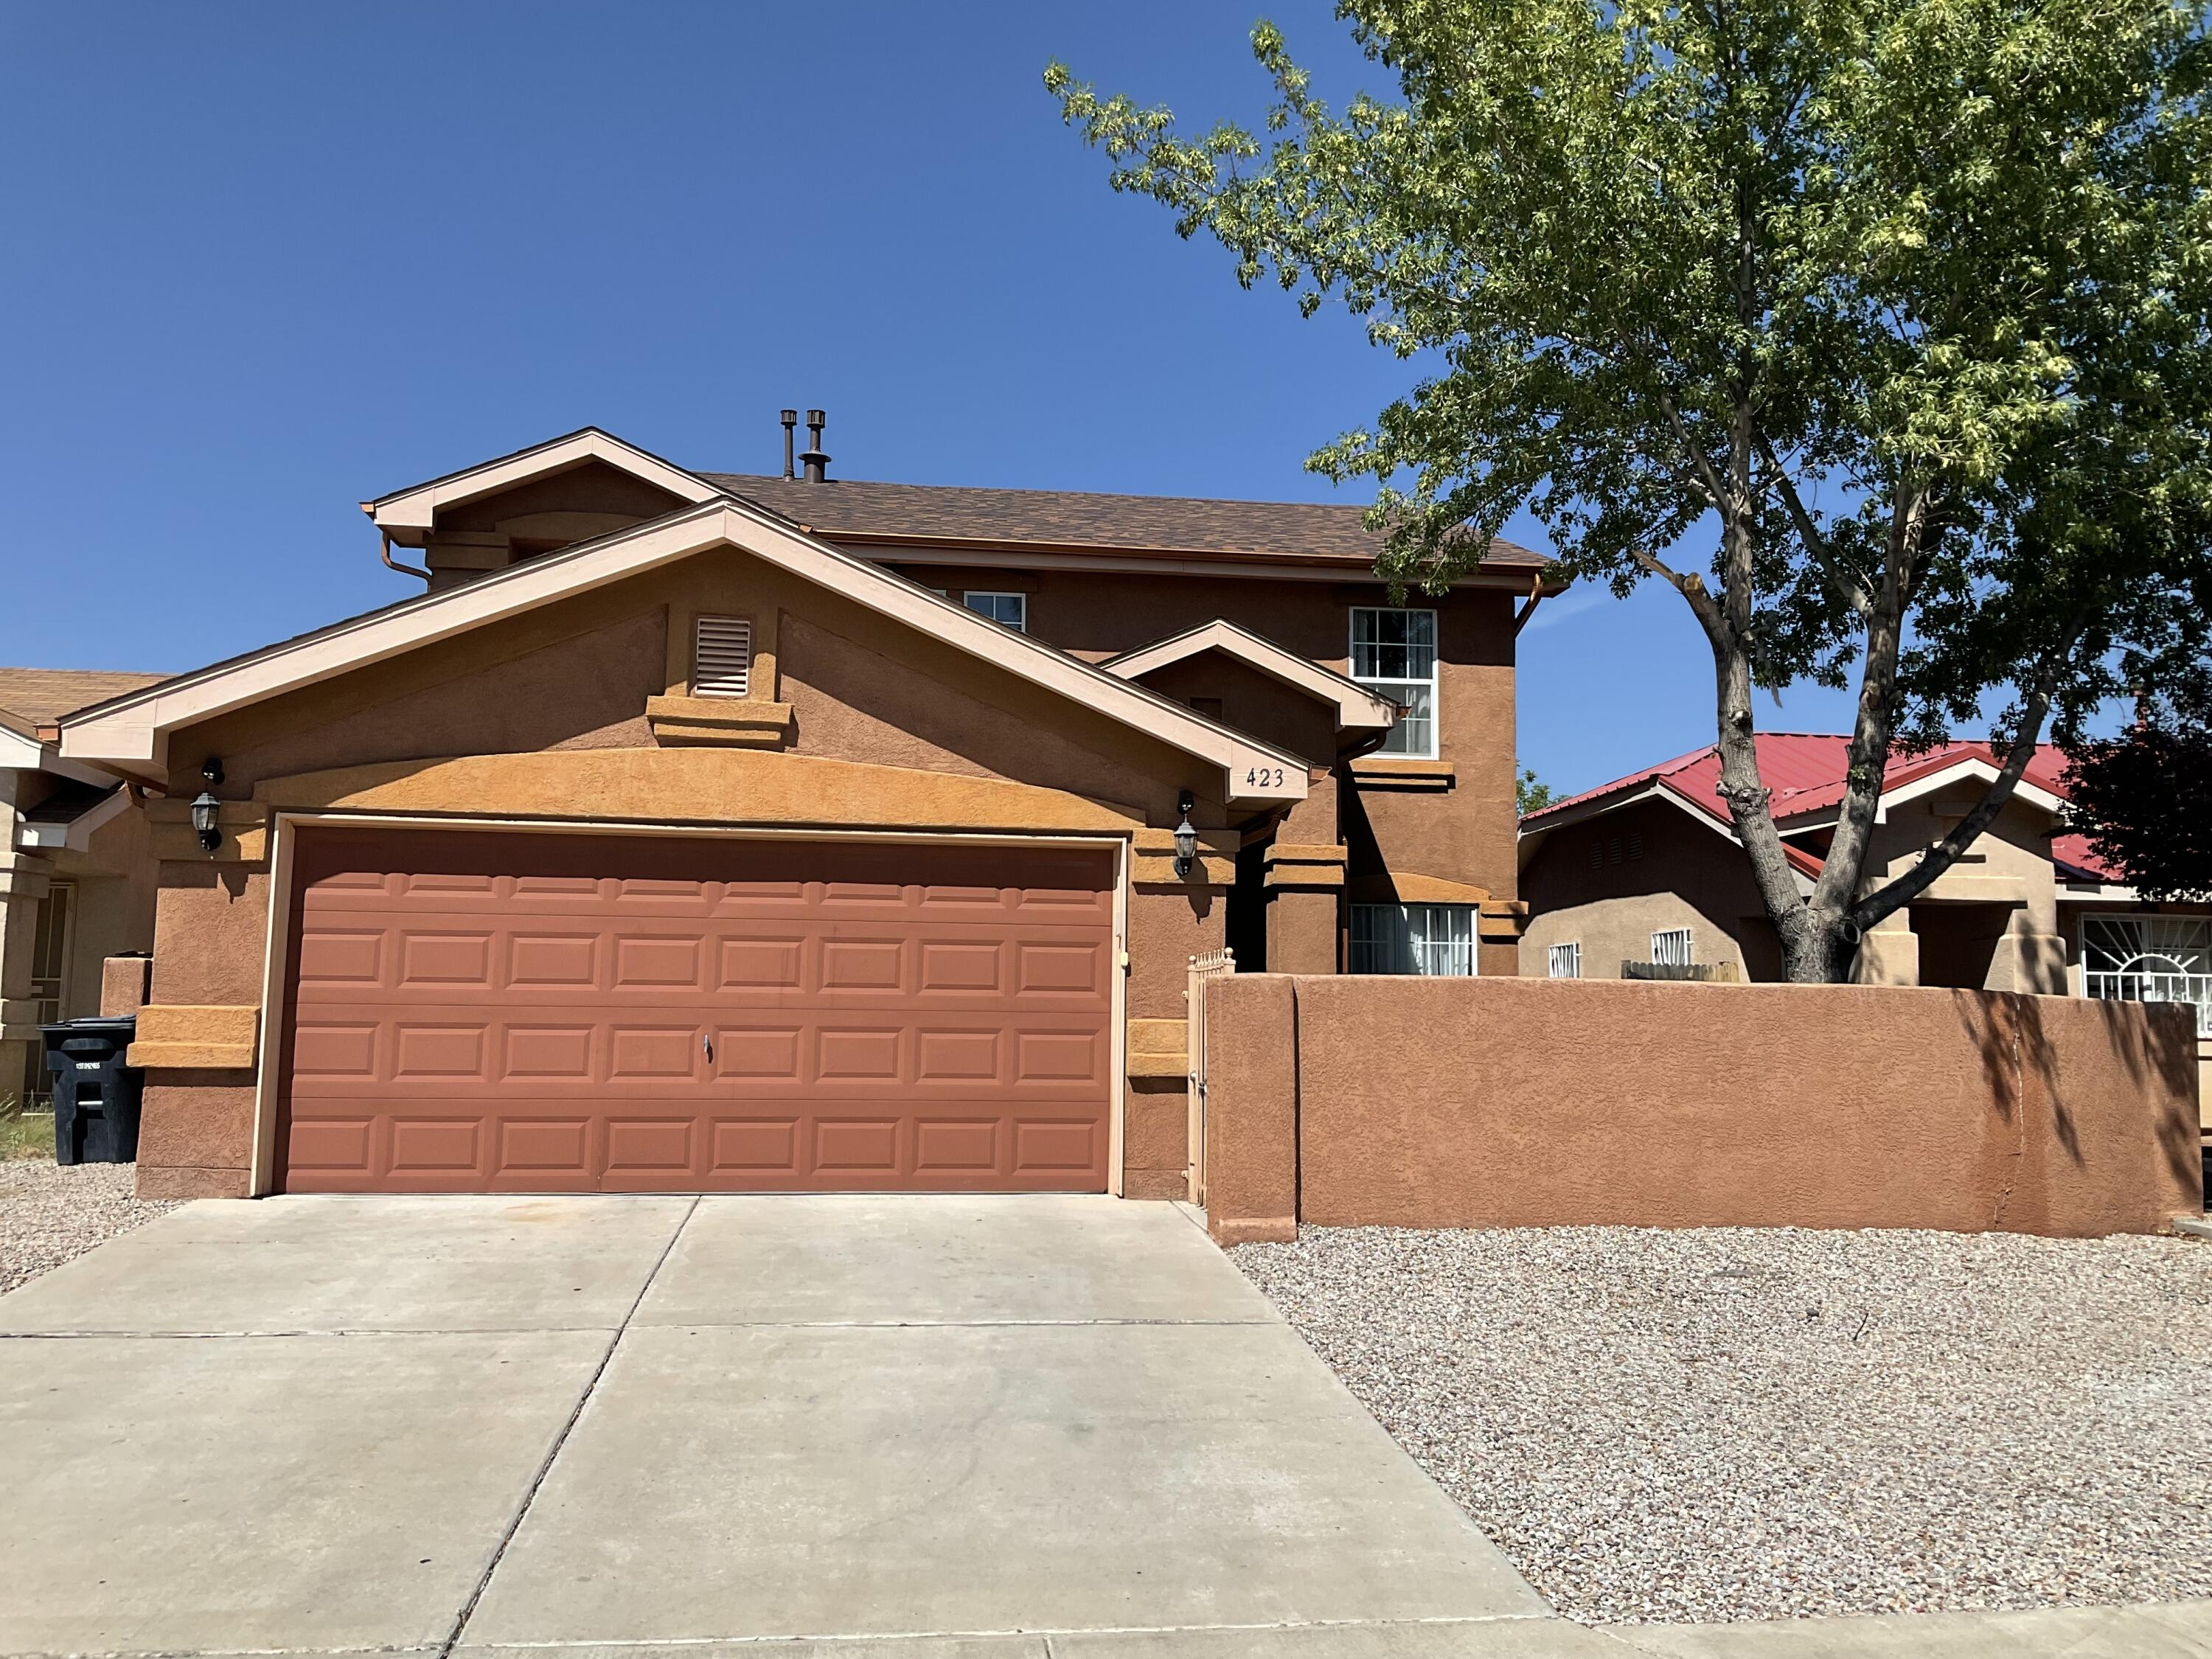 Come and see this beautiful and cozy home. New roof installed in 10/2020. 3 bedroom 2 1/2 bathroom and a loft. REFRIGERATED AIR!!!!!!!!! Gutters and NEW roof installed on 10/2021. Your clients will fall in love with the patio. Apricot and peach trees, in addition to a cover area to enjoy the BBQ with the family and friends.Sellers prefer to close @ Stewart Title with Debbie Hennig.HOME IS OCCUPIED. Owner is requesting 1 hour in advance notice.  Please schedule via showing time. USE ALL COVID PRECAUTIONS.